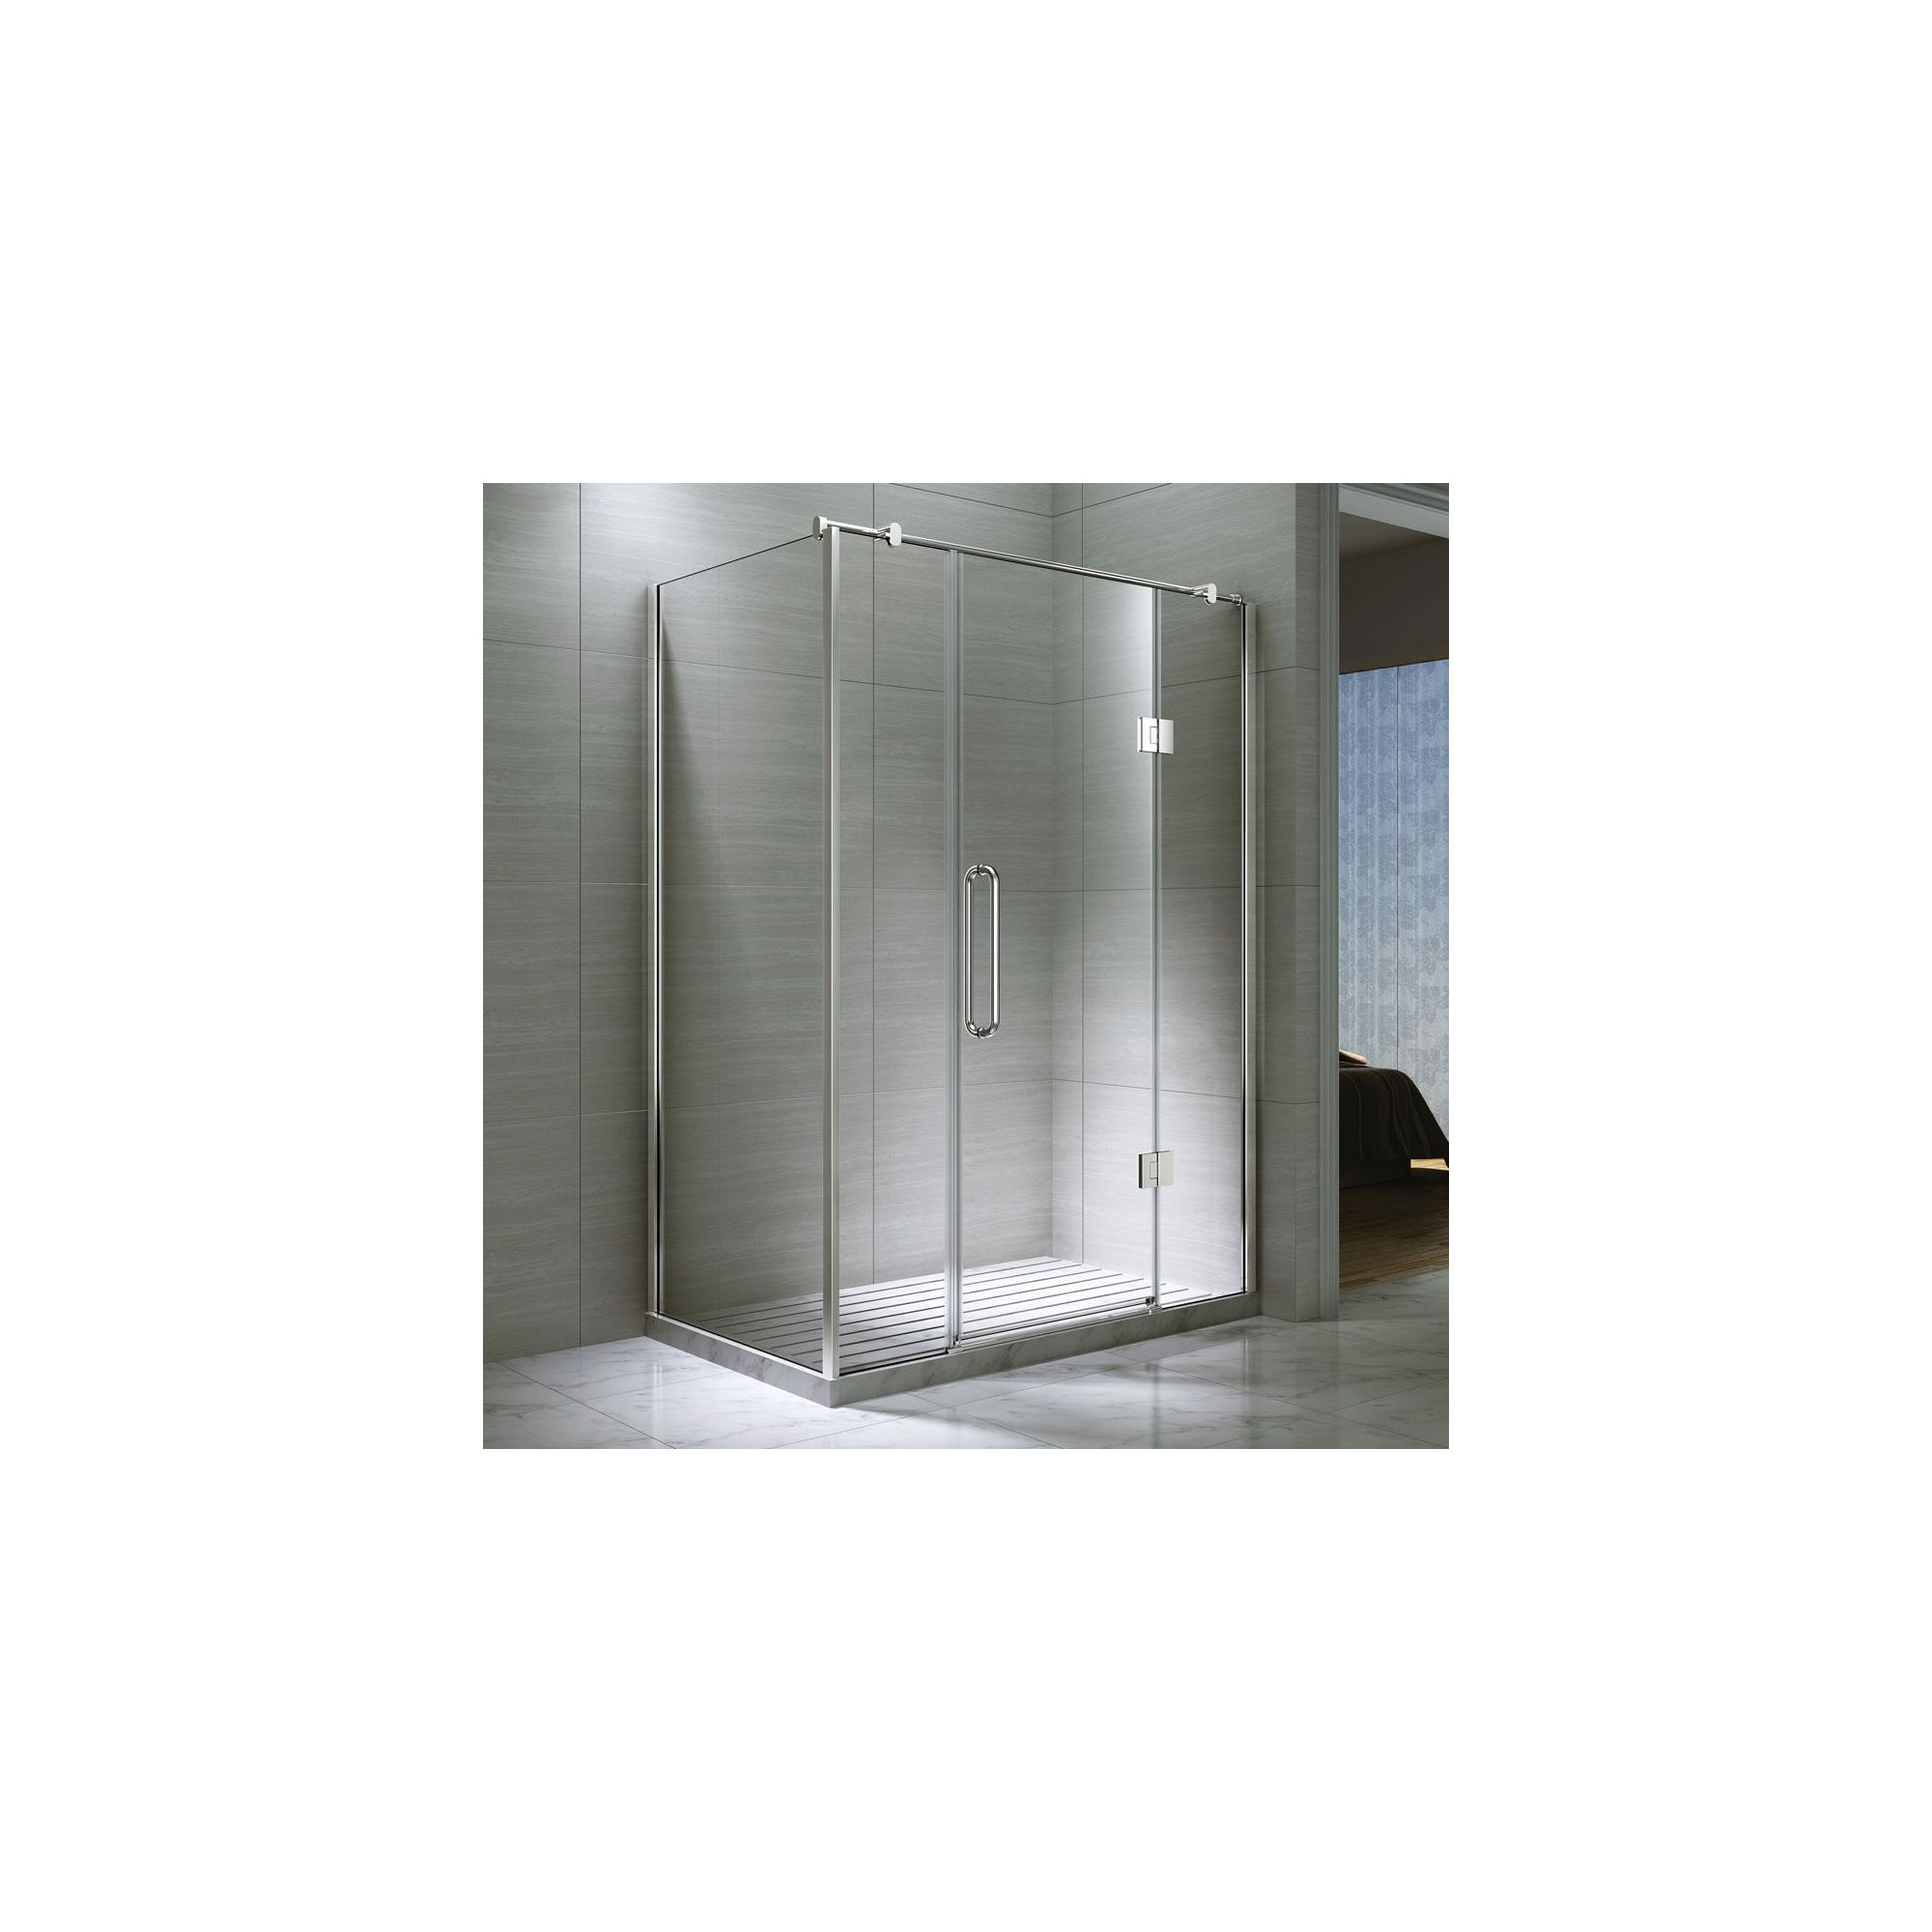 Desire Ten Double Inline Hinged Shower Door with Side Panel, 1200mm x 800mm, Semi-Frameless, 10mm Glass at Tesco Direct